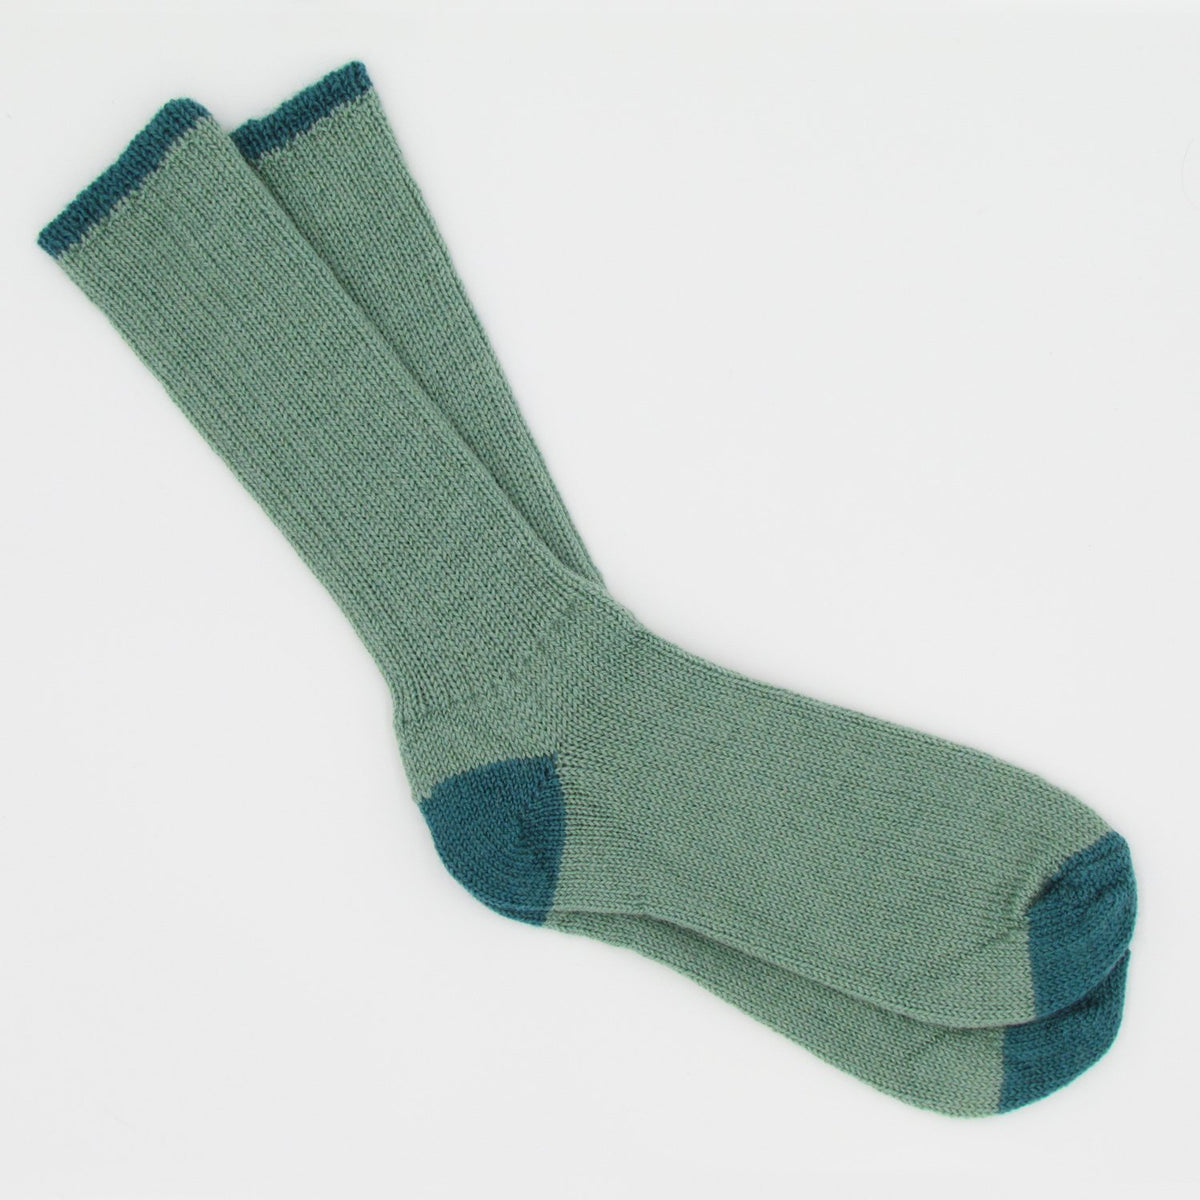 Soft Wool Socks - Jade/Aqua